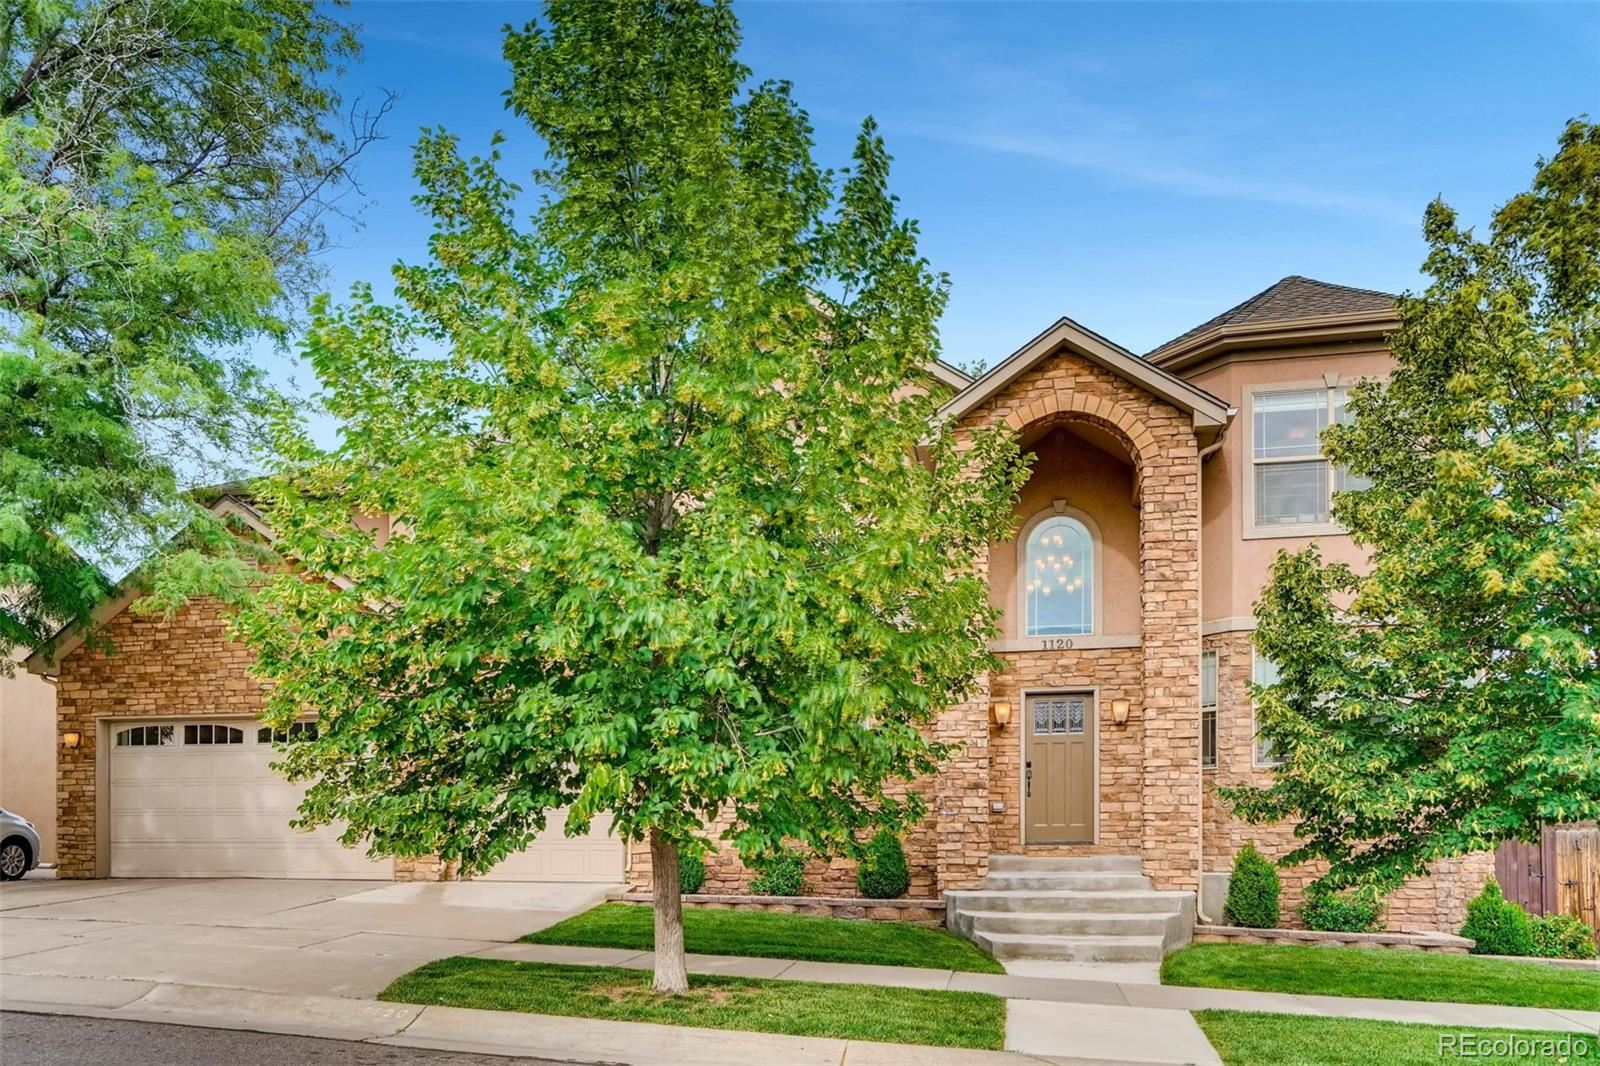 1120 S Ammons Street, Lakewood, CO 80232 - #: 4485435